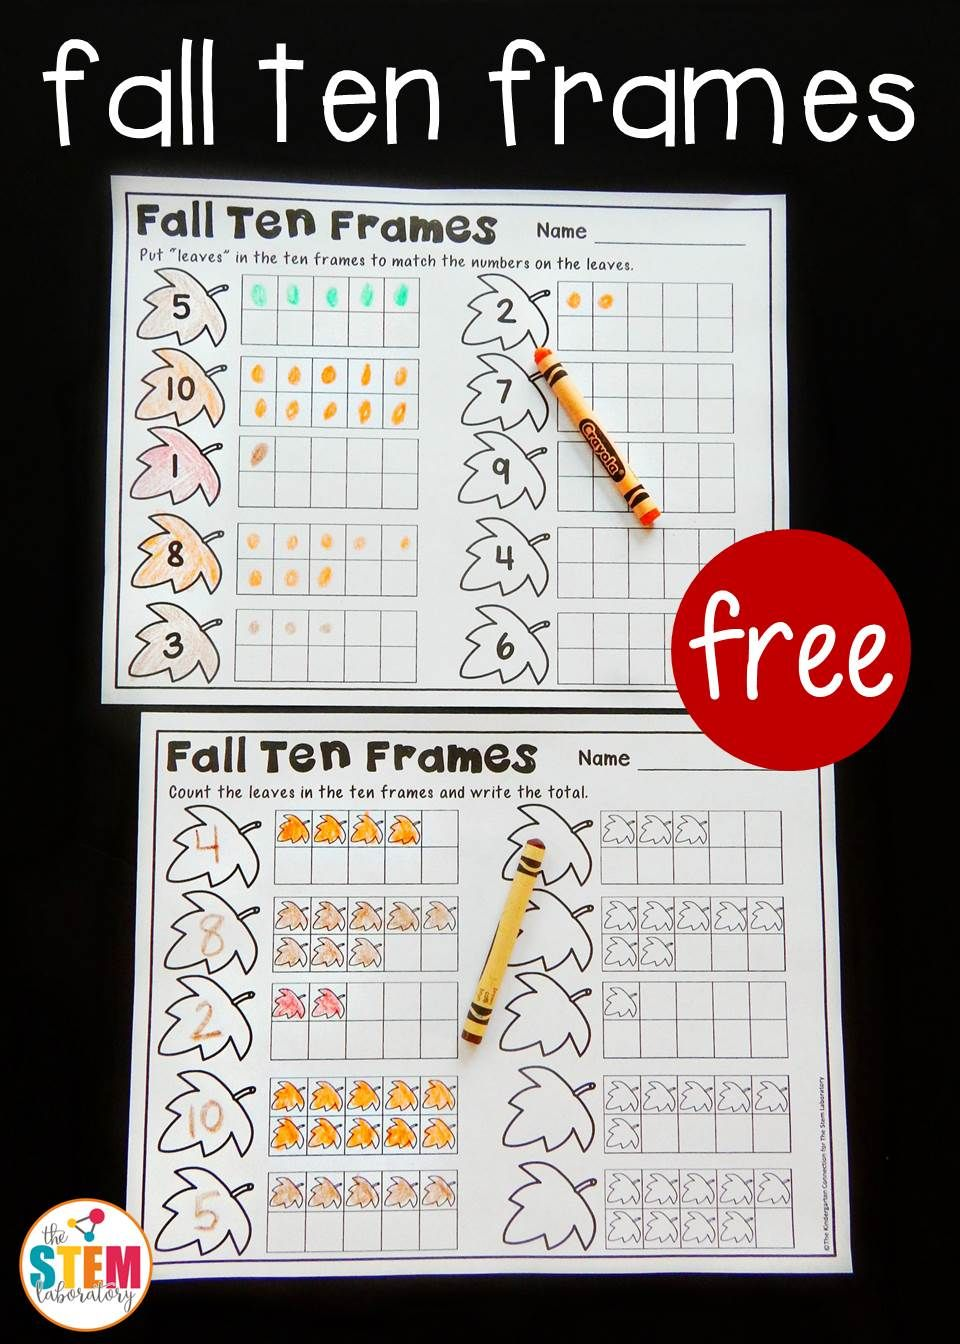 Fall Ten Frame Printables  The Stem Laboratory  Whole Number